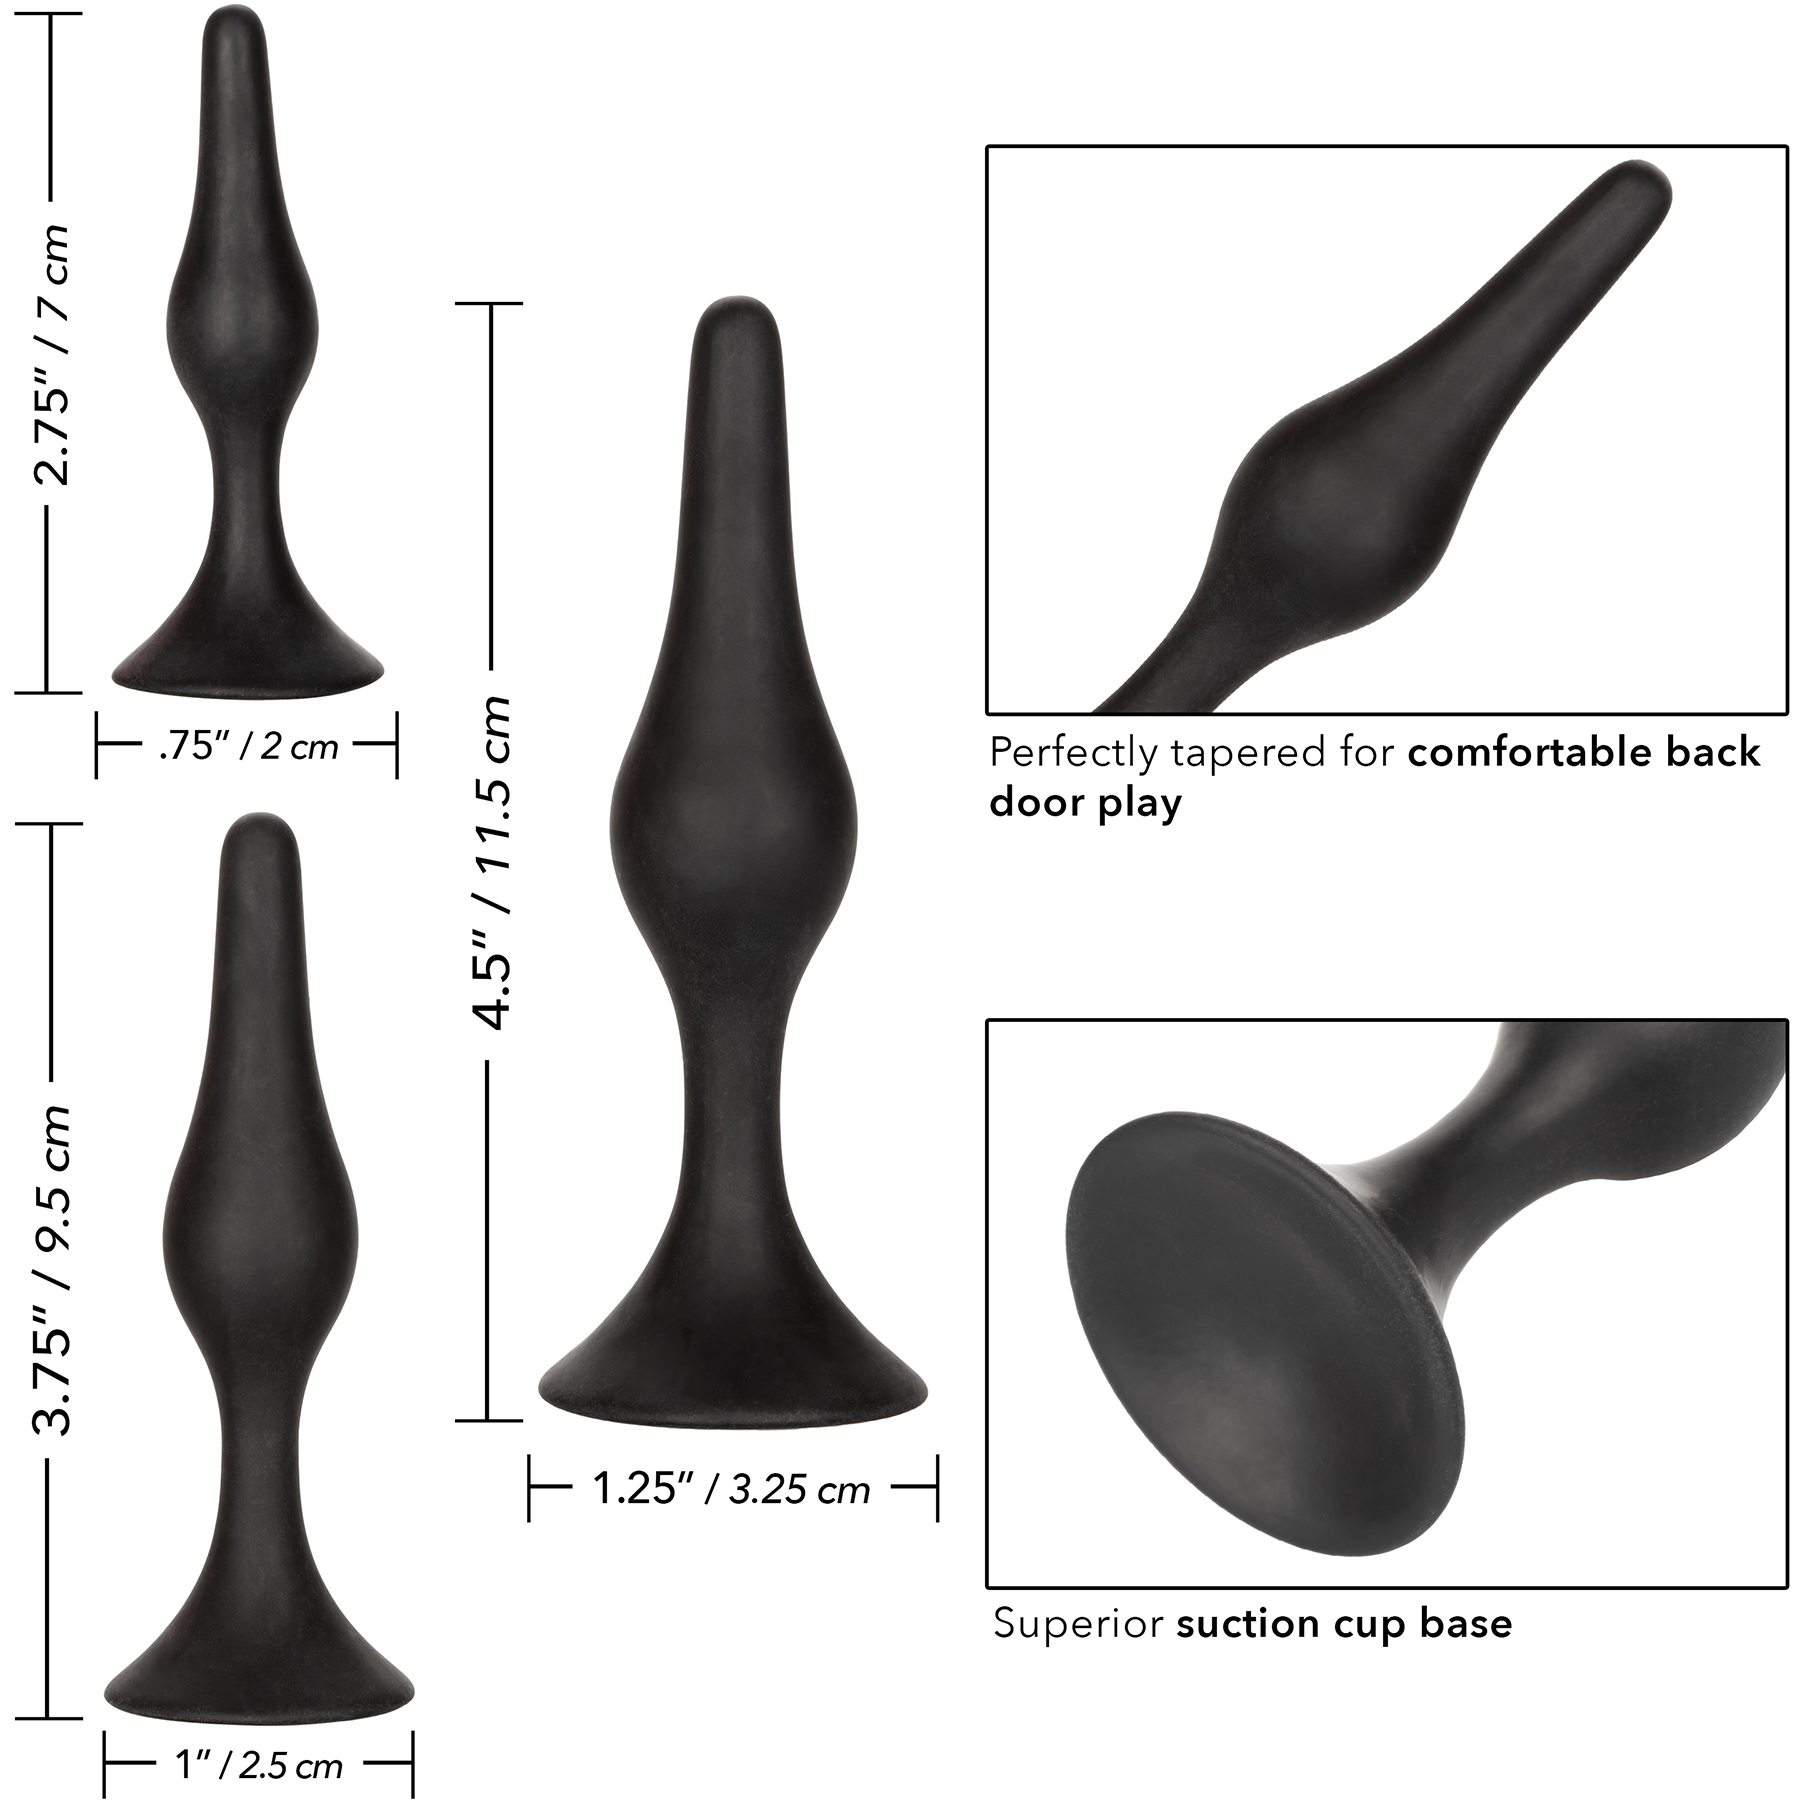 Three-Piece Silicone Anal Starter Kit - Measurements